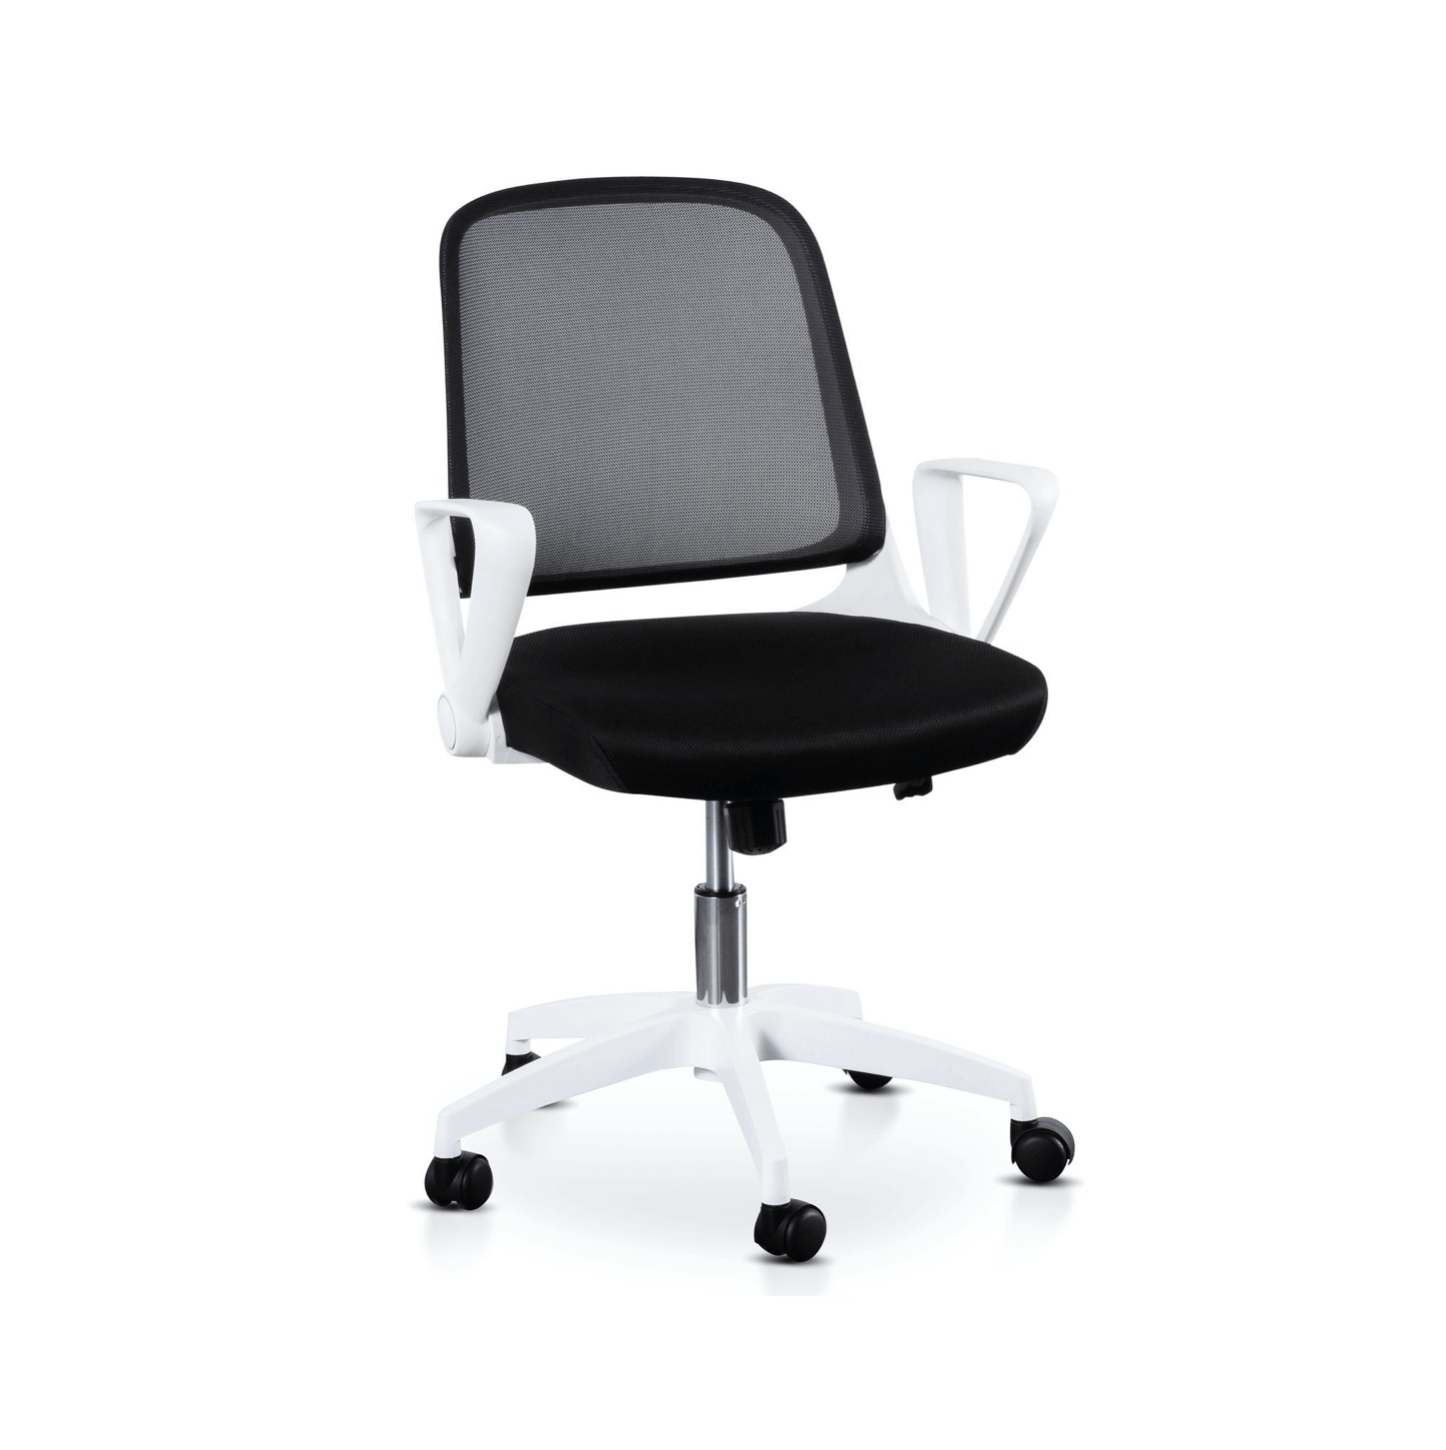 Palo Office Chair